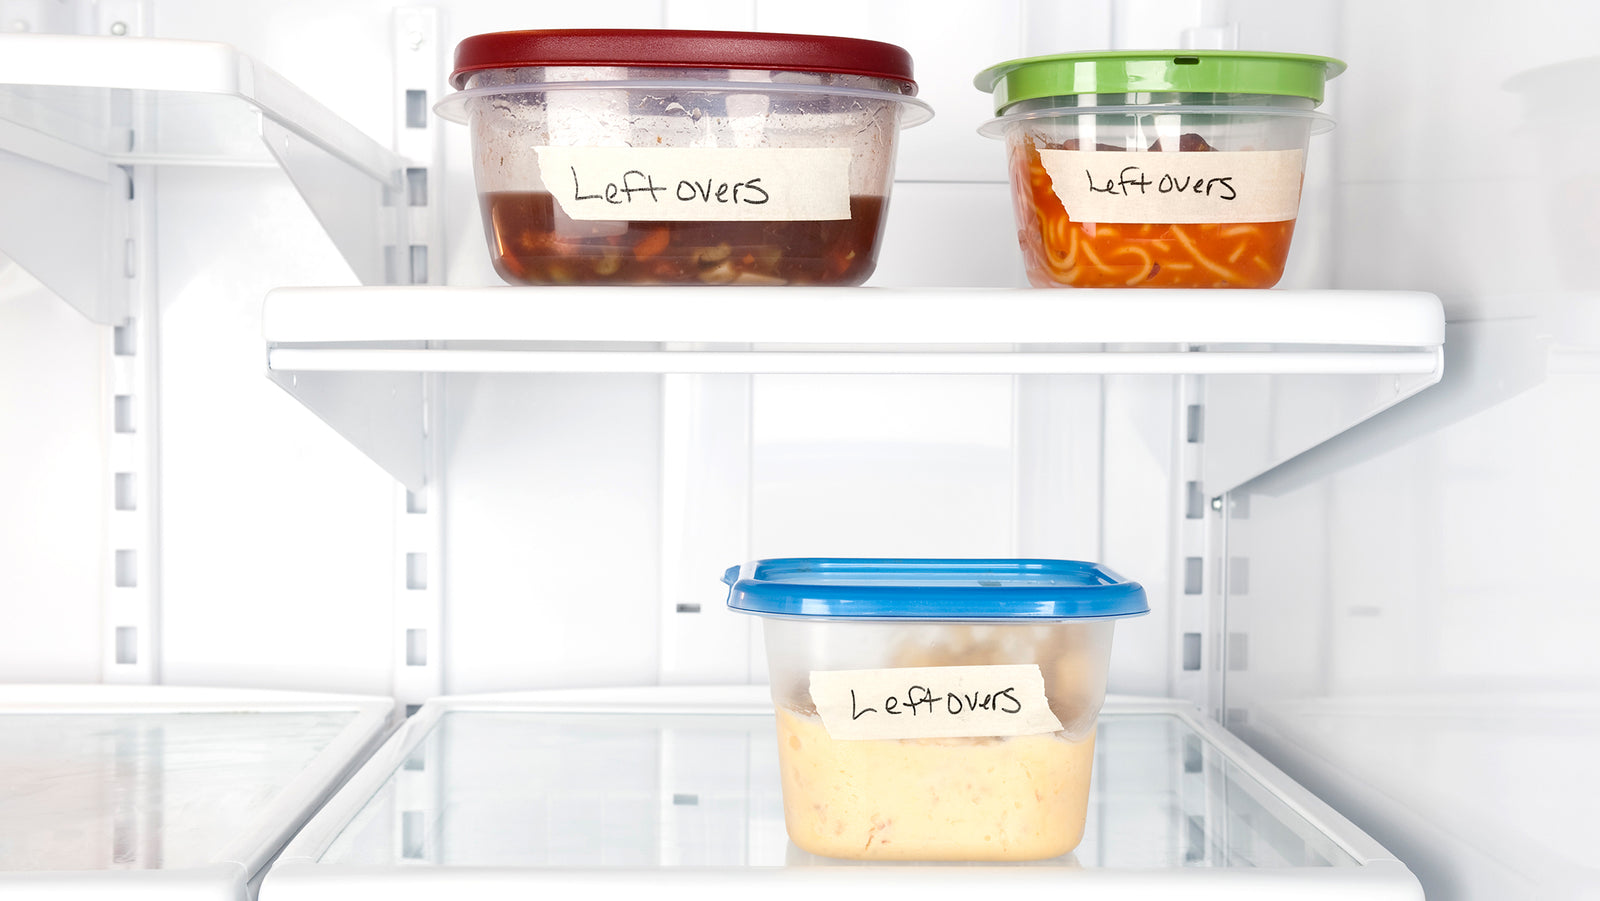 6 Food Safety Tips for Leftovers